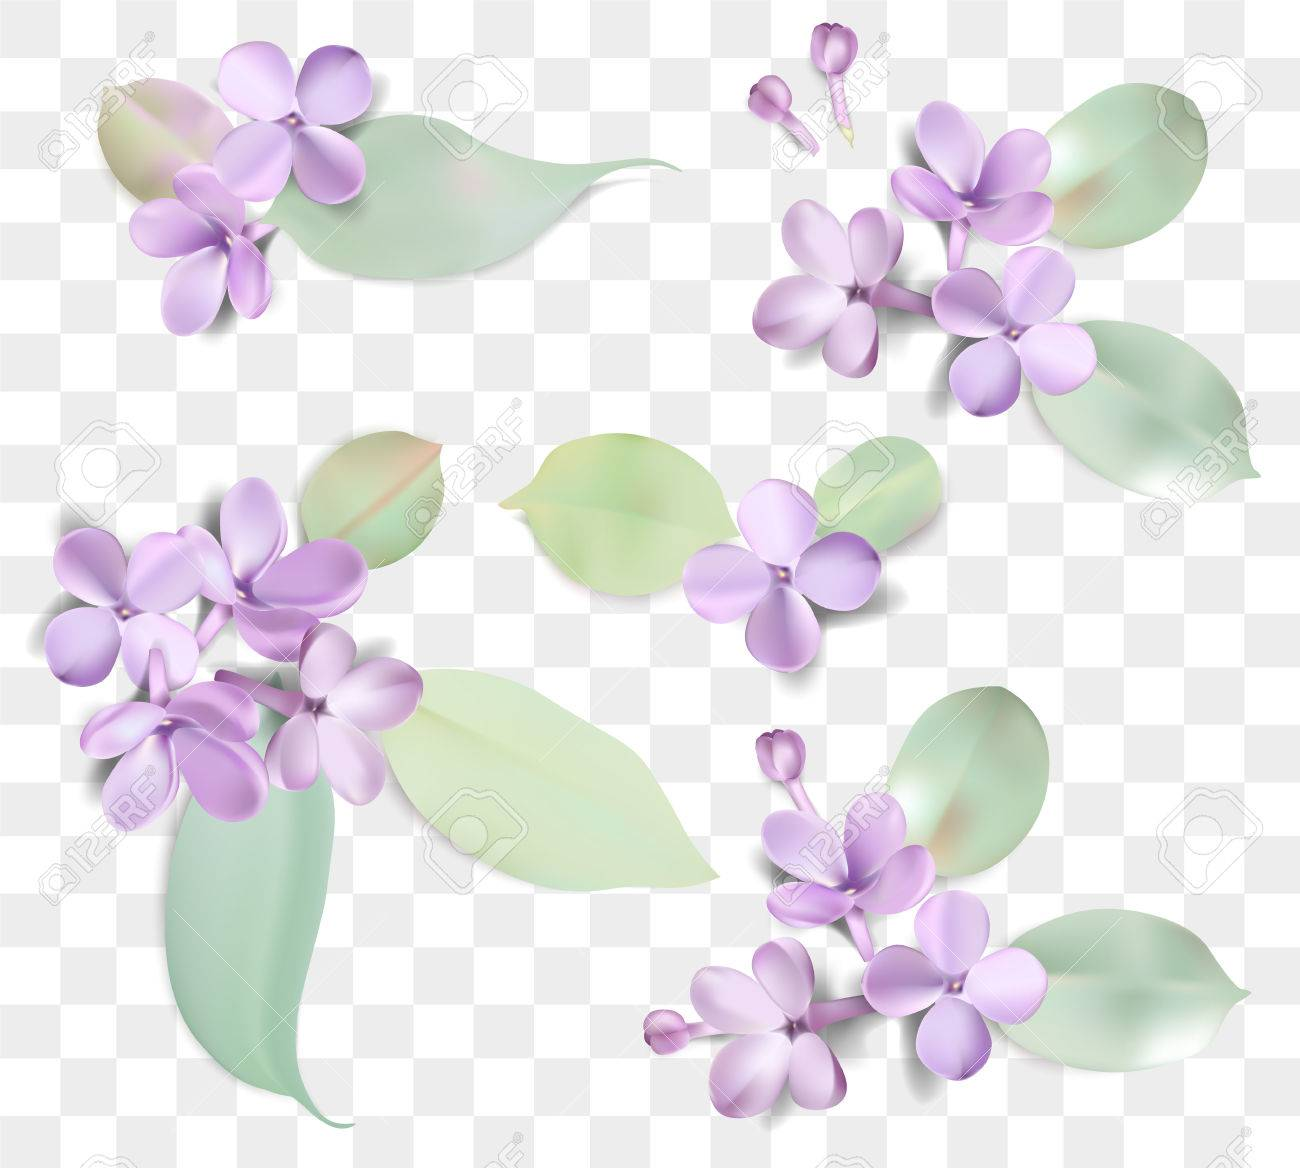 Soft Pastel Color Floral Group Isolated On Transparent Background Purple Lilac Flowers And Petals Watercolor